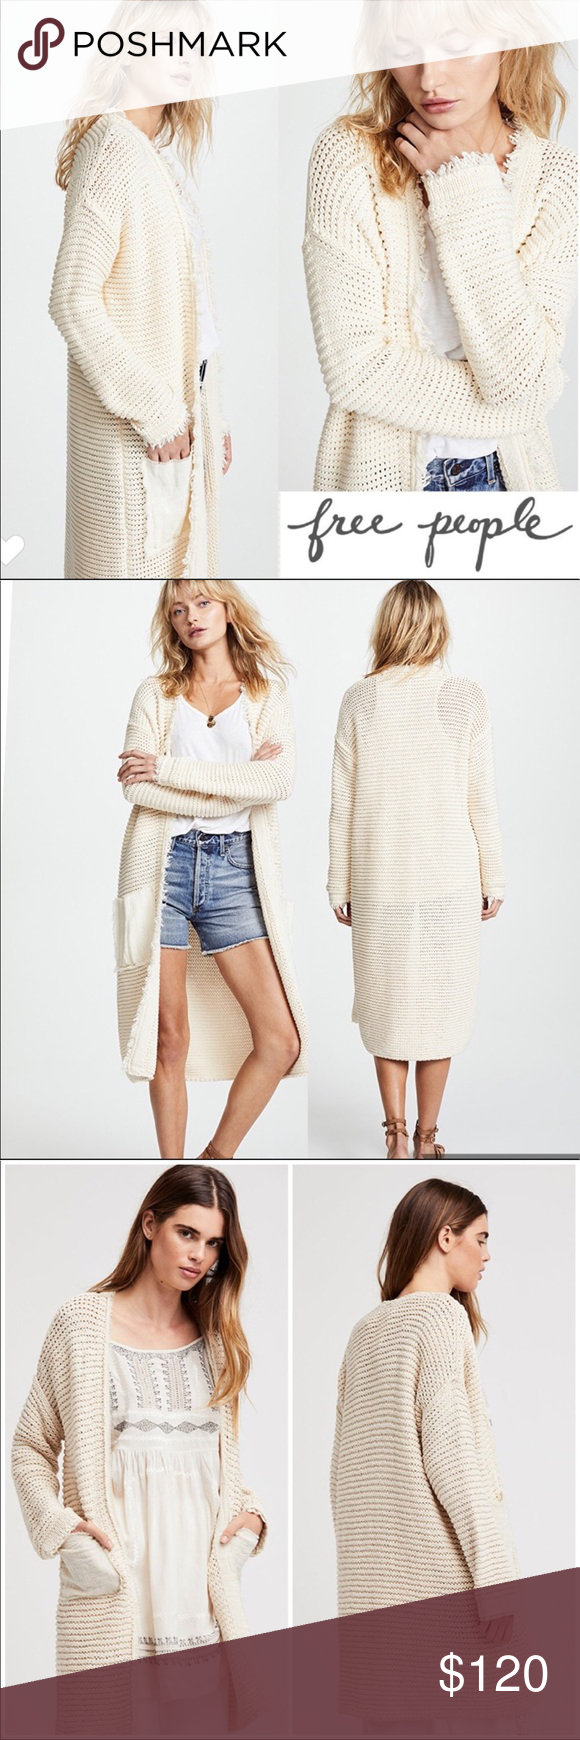 FREE PEOPLE Woodstock Cream Duster Gorgeous raw hem cream long duster  that s new with tags! 100% Cotton Make me an offer 🌷 A1 Free People  Sweaters ... 2f5ee3f3b